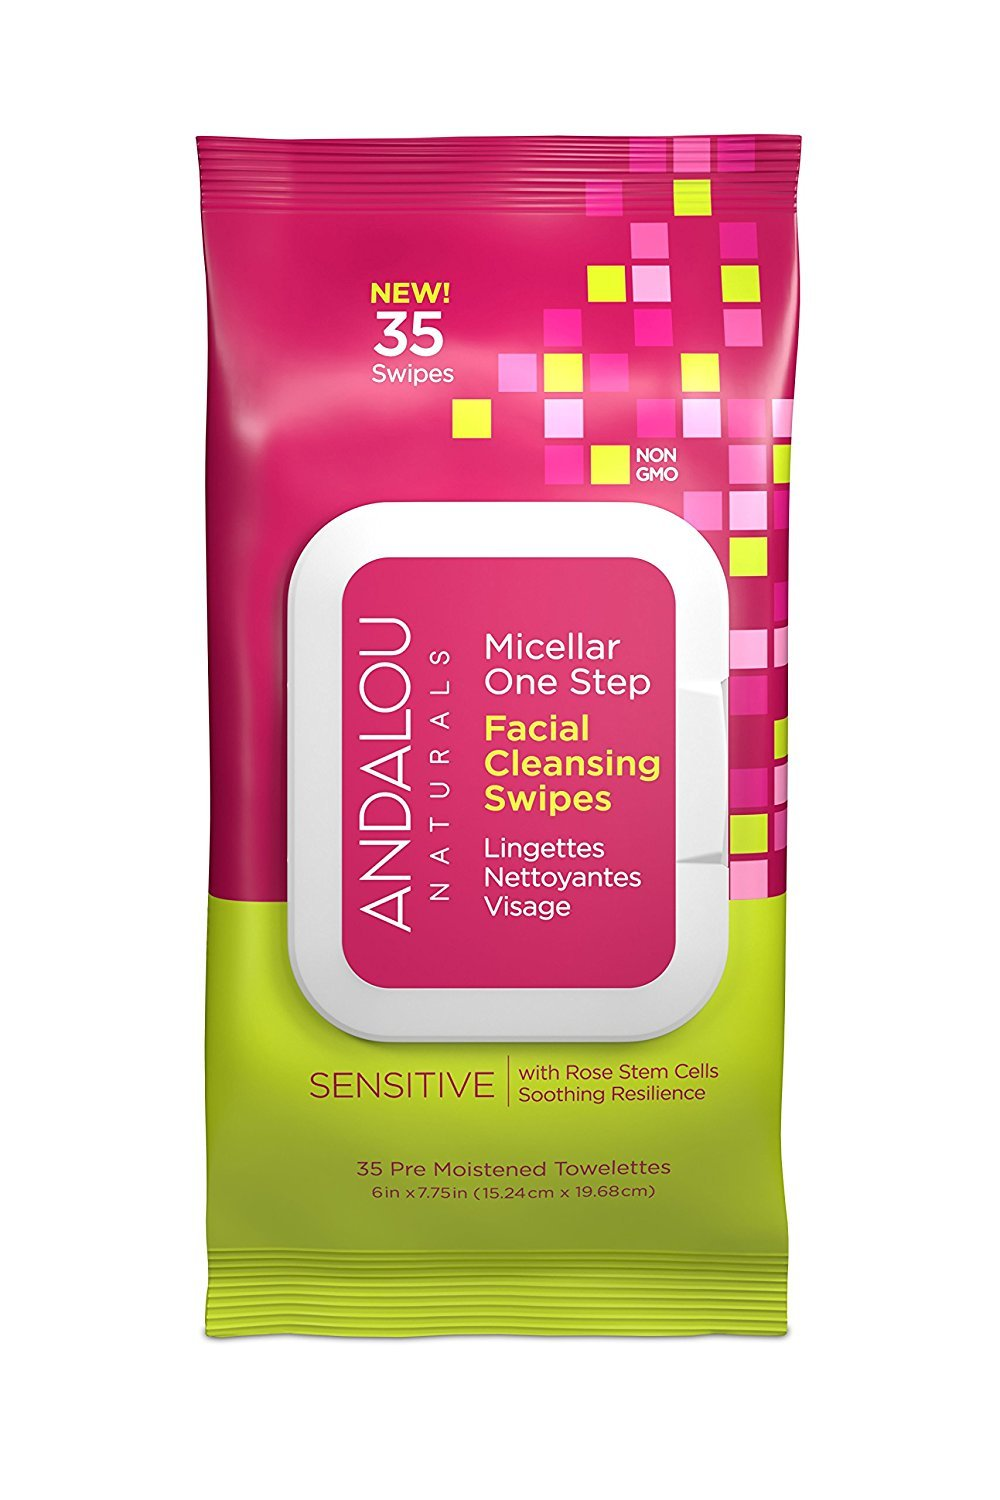 Andalou Naturals Sensitive Micellar One Step Facial Cleansing Swipes, 35-Piece 25242